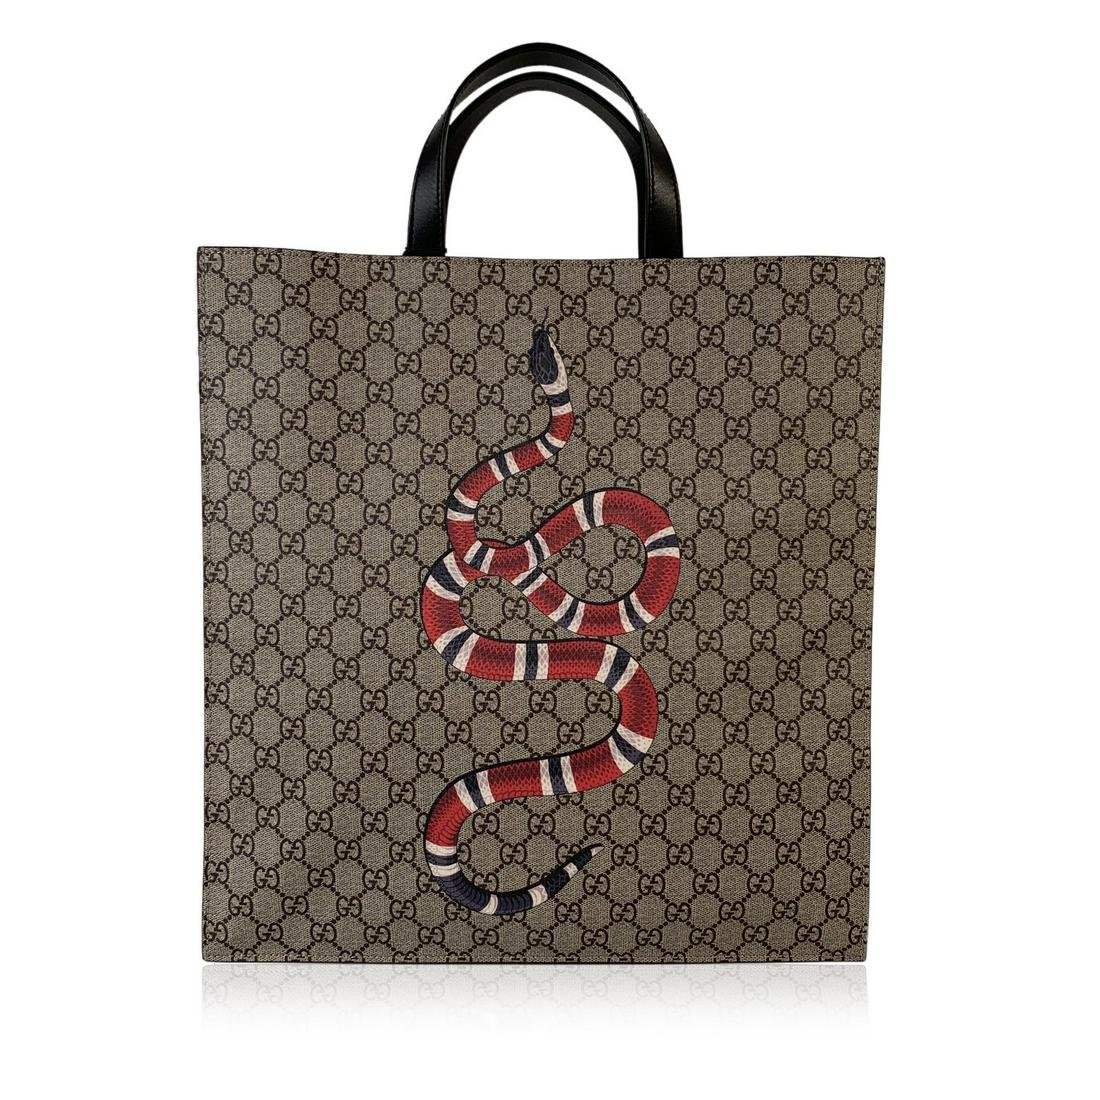 Gucci GG Supreme Monogram Canvas Kingsnake Print Tote